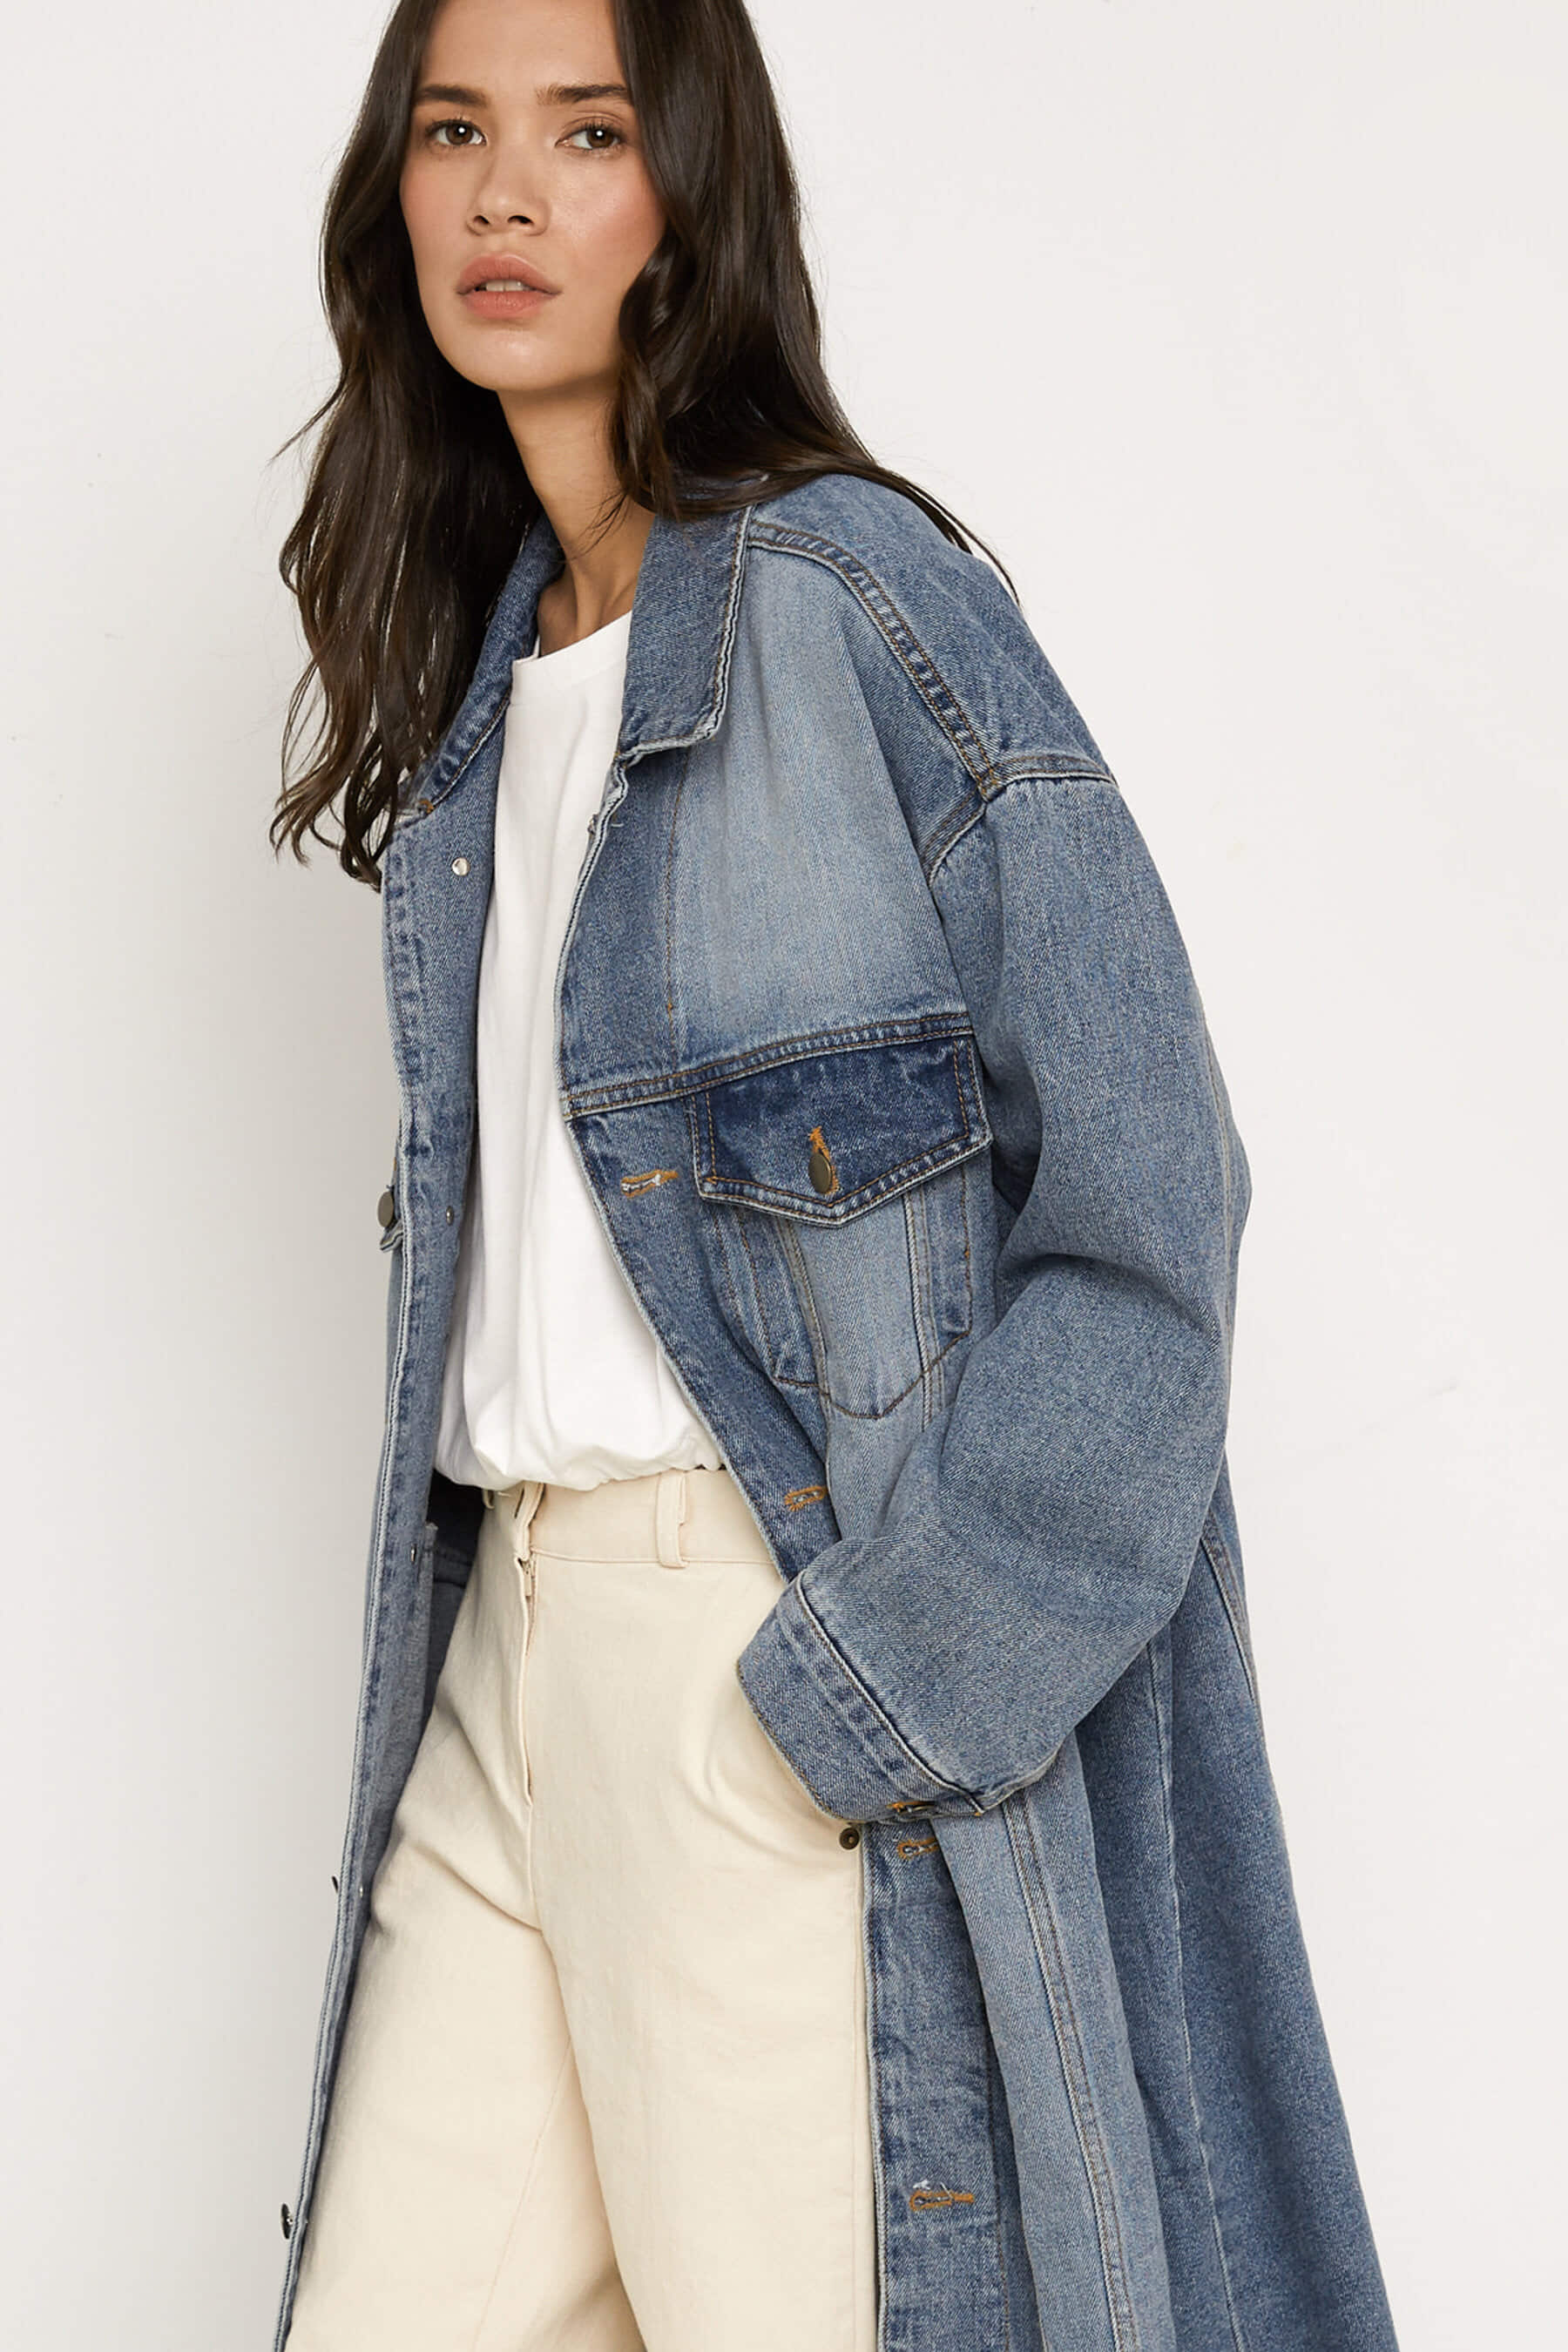 Denim Jacket K021 by Oak + Fort